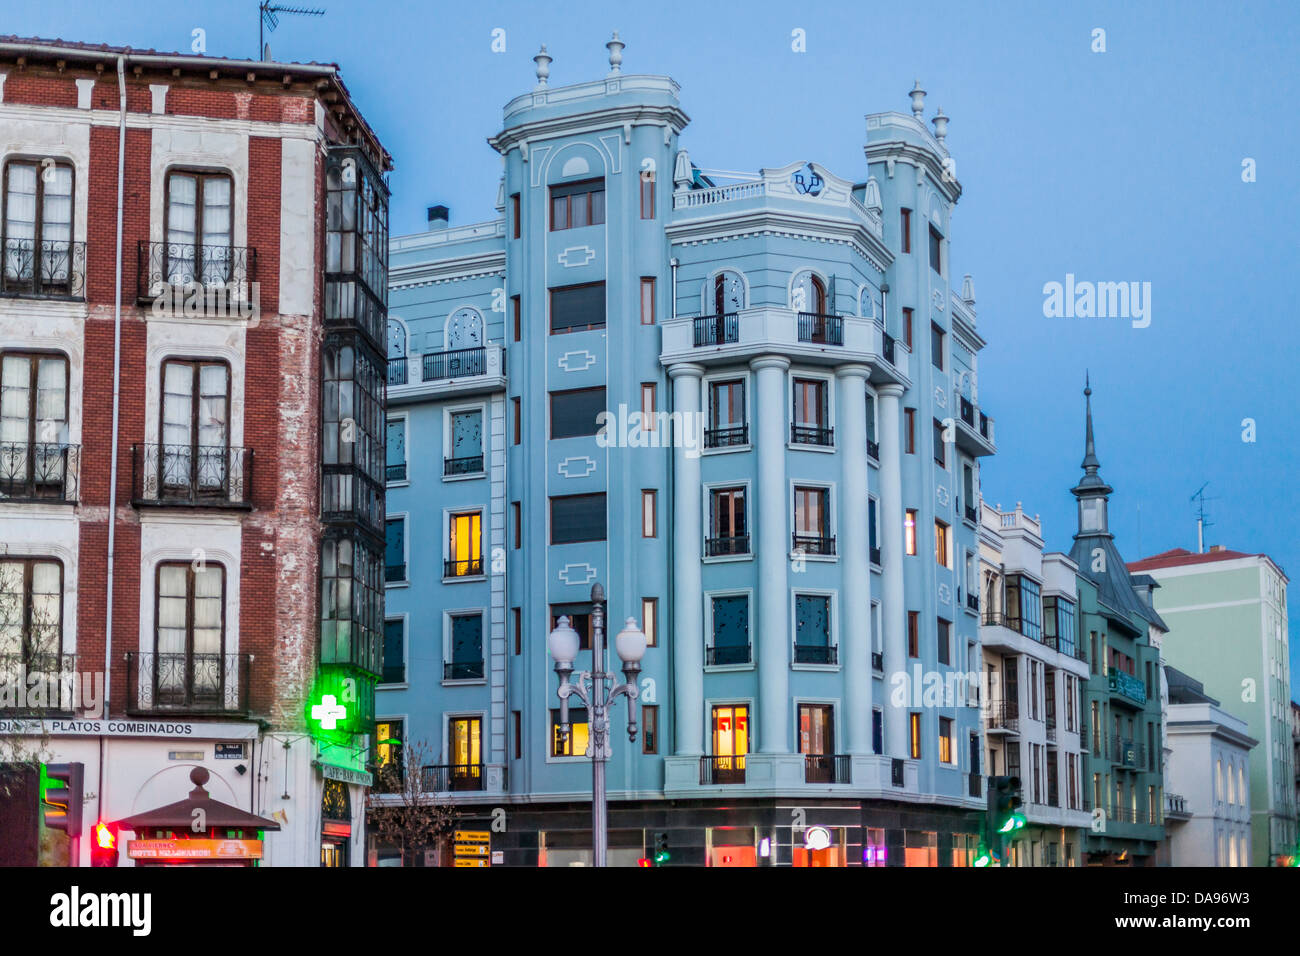 valladolid,castile and león,spain - Stock Image